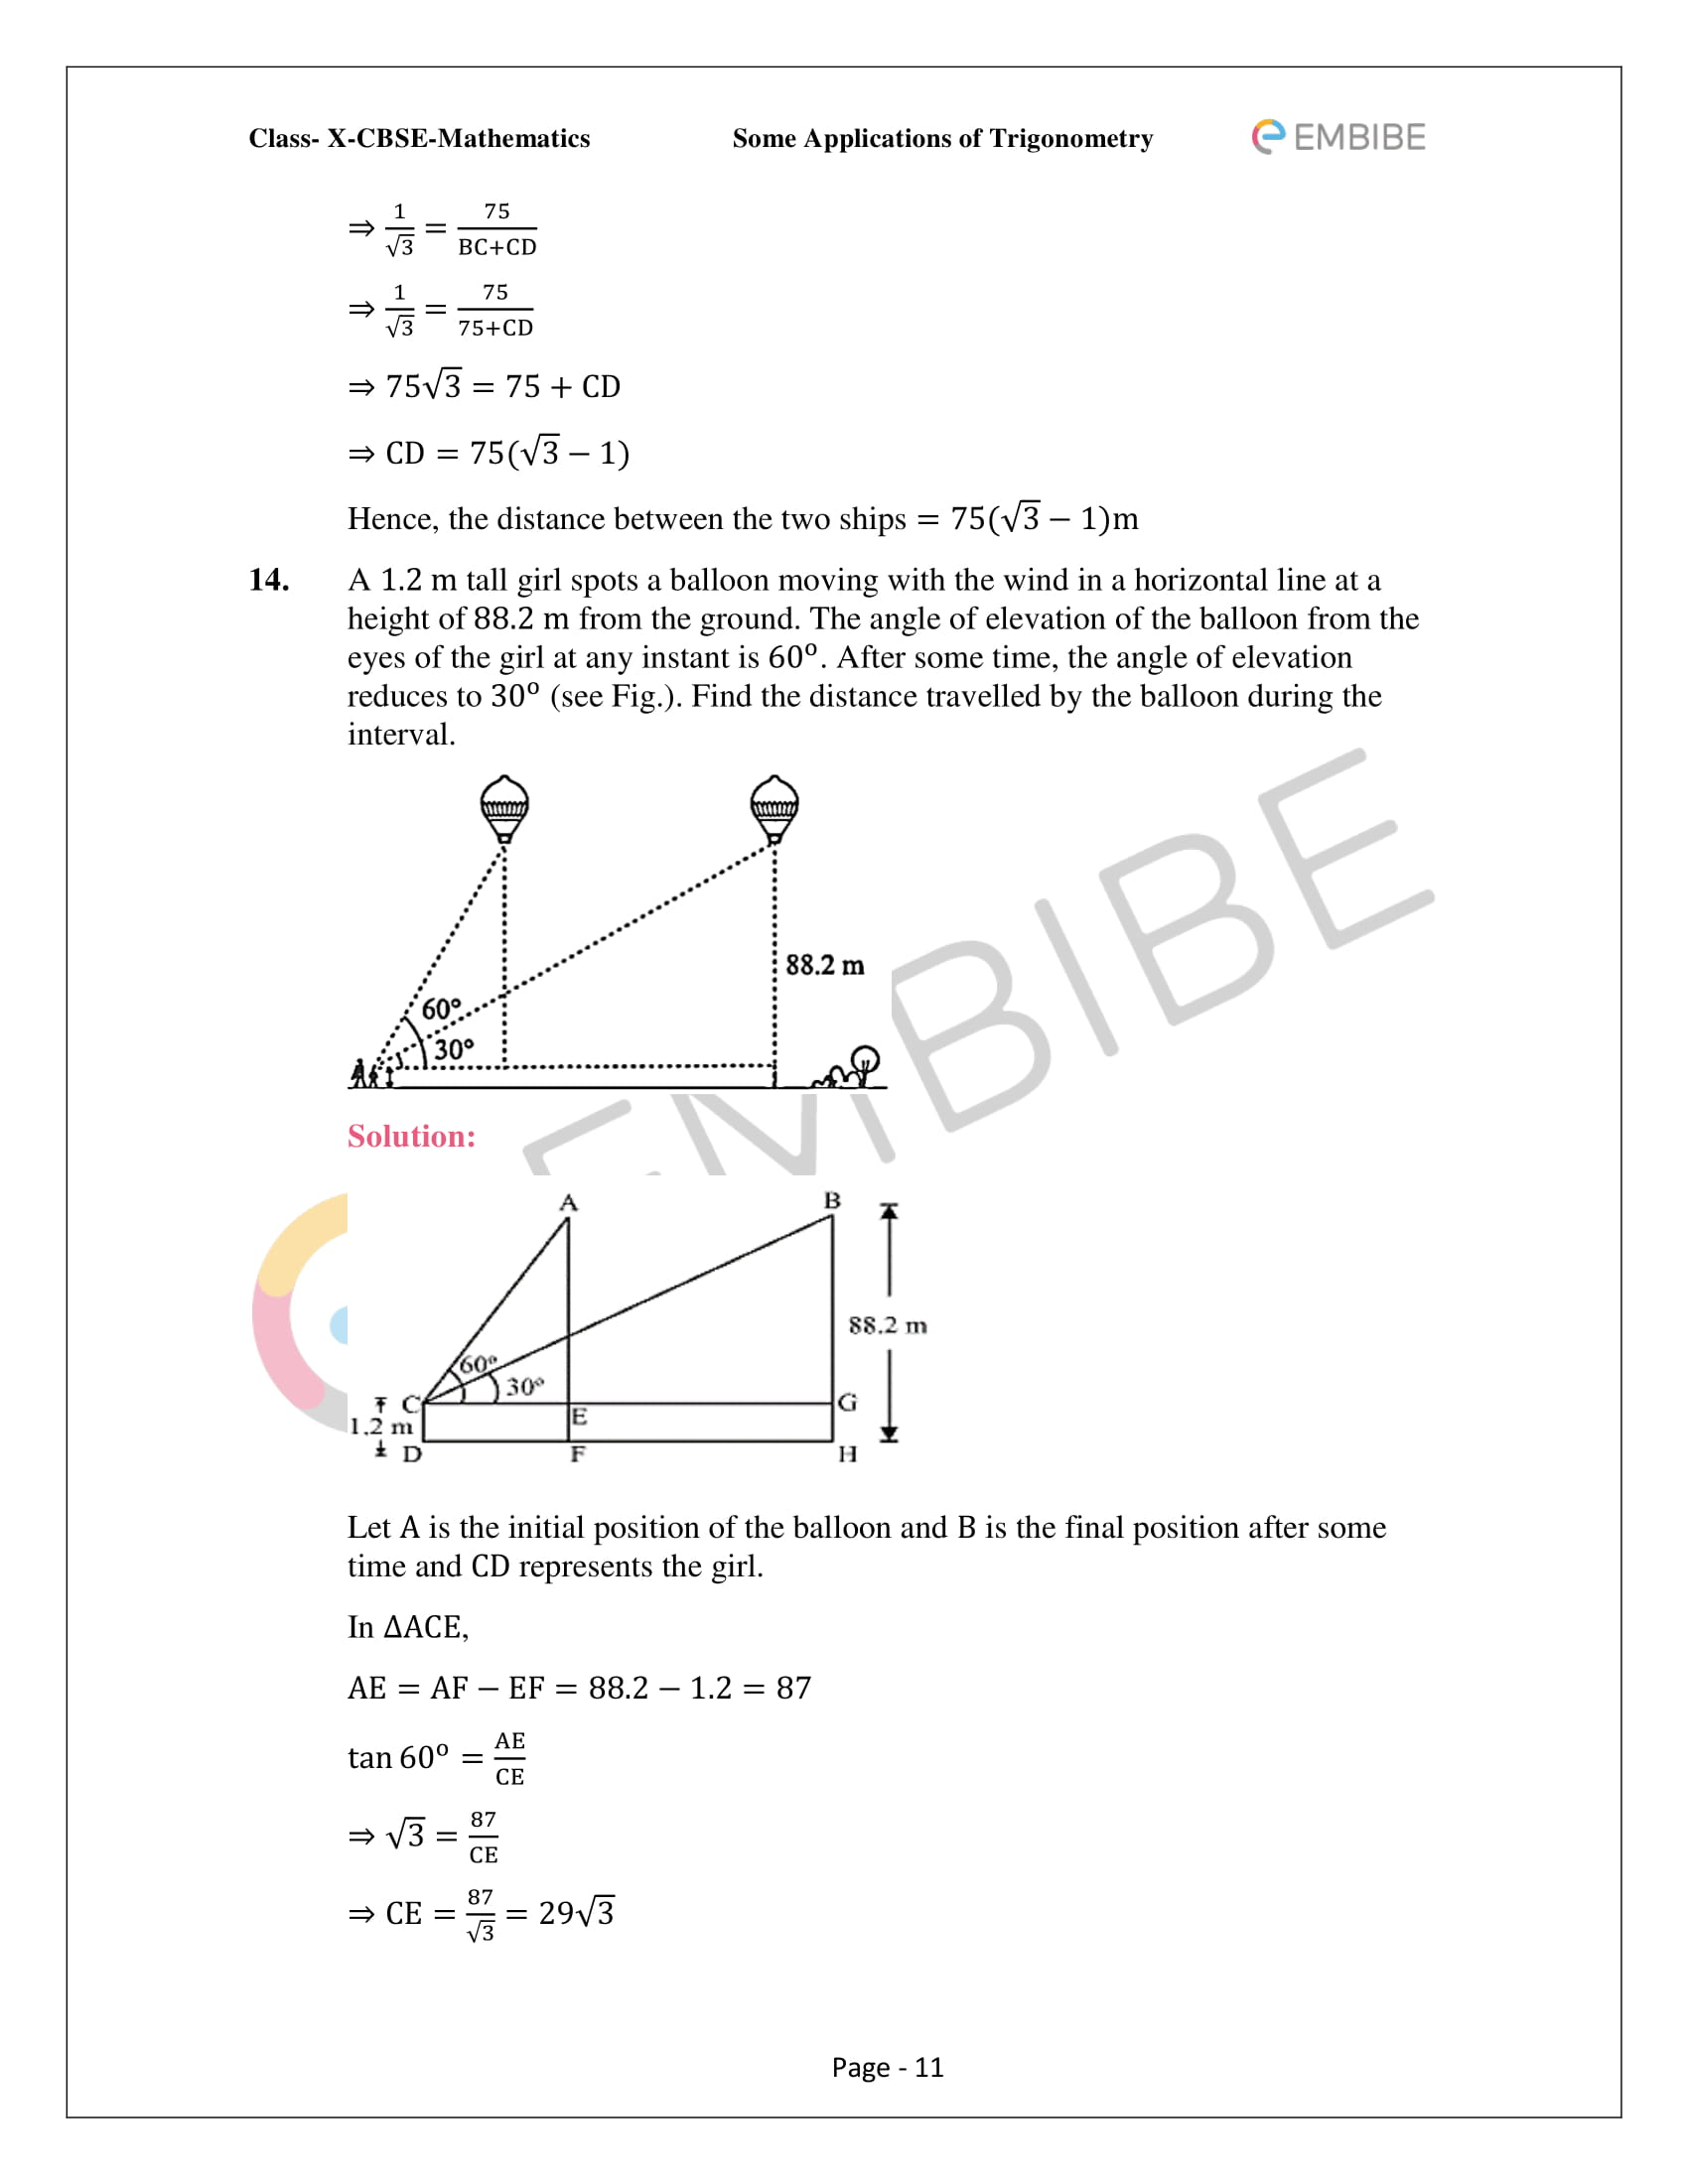 CBSE NCERT Solutions For Class 10 Maths Chapter 9 –Introduction To Trigonometry - 11